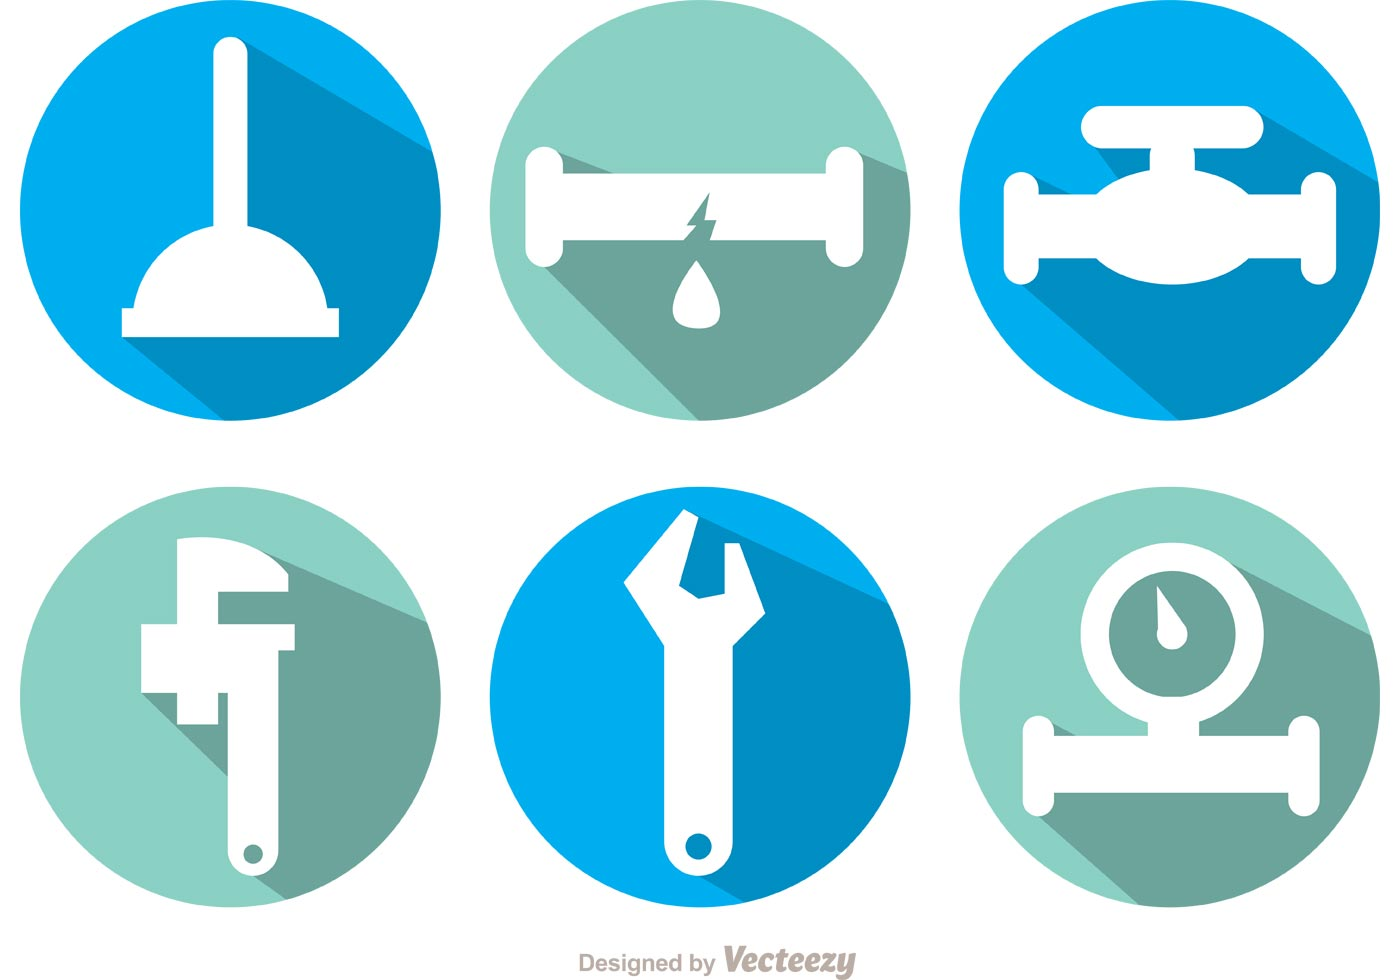 plumbing-long-shadow-icon-vectors.jpg